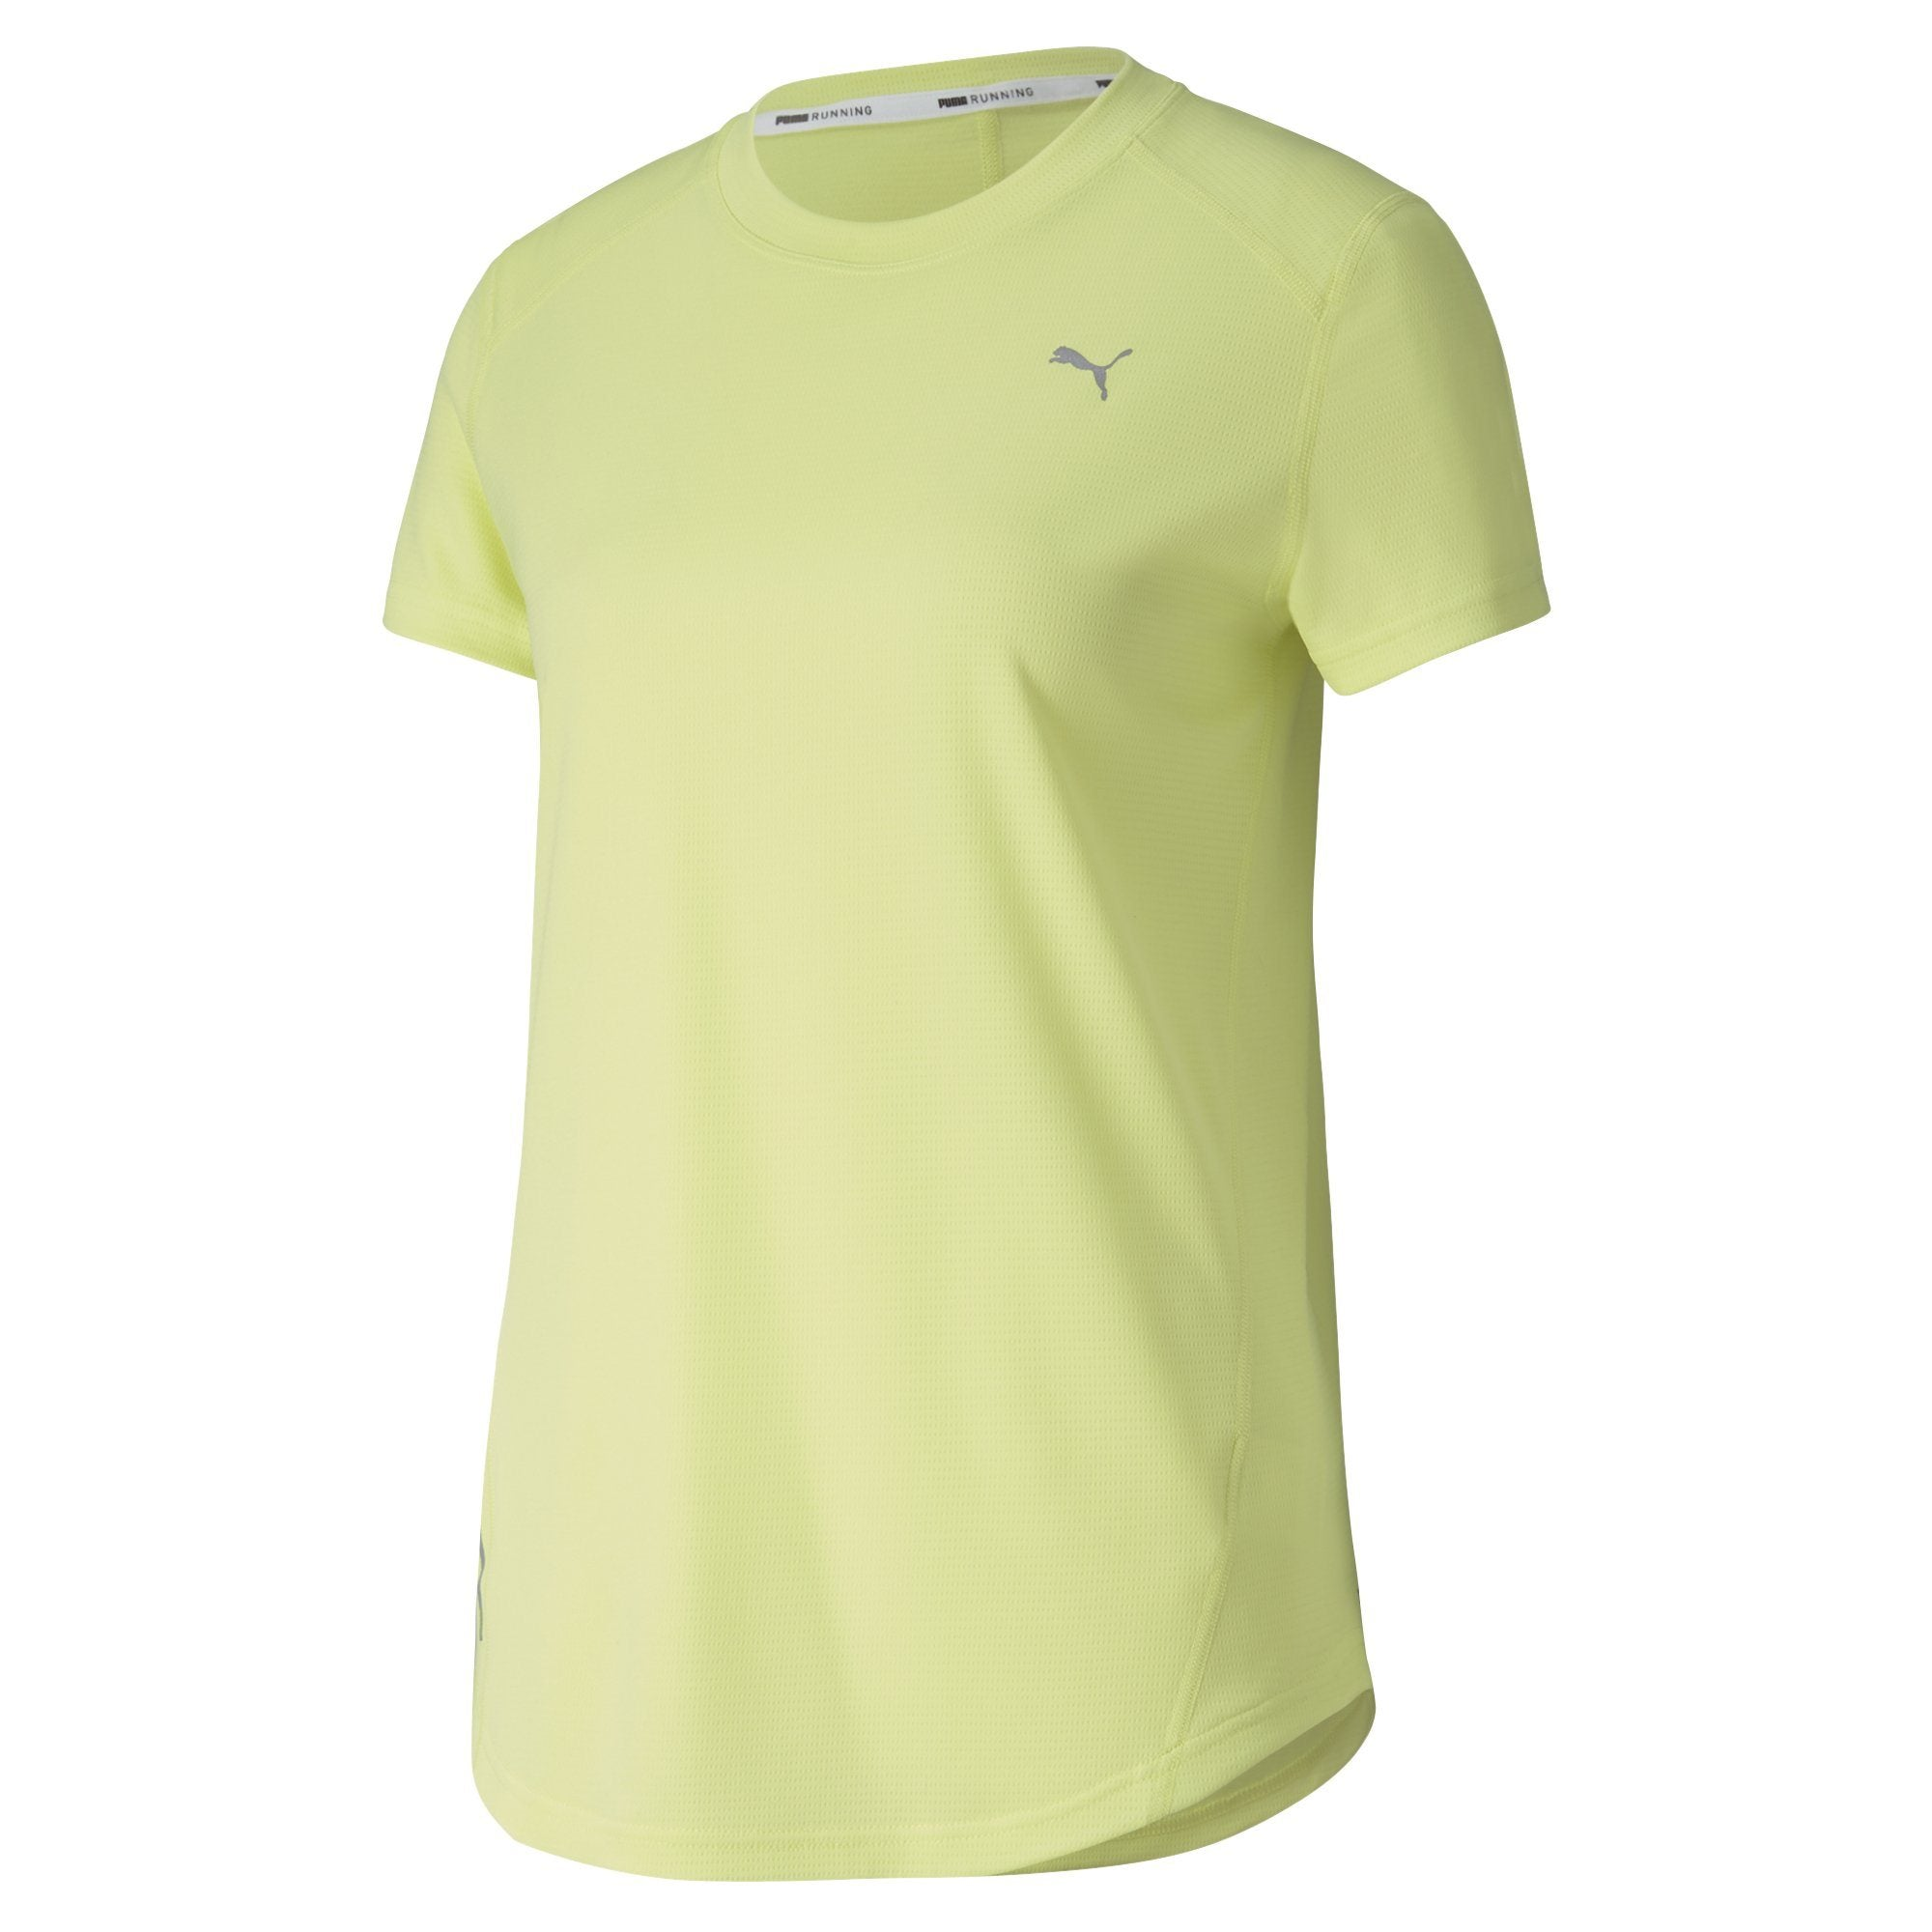 Puma Ignite S/S Tee (Womens) - Sunny Lime Apparel - Women Puma